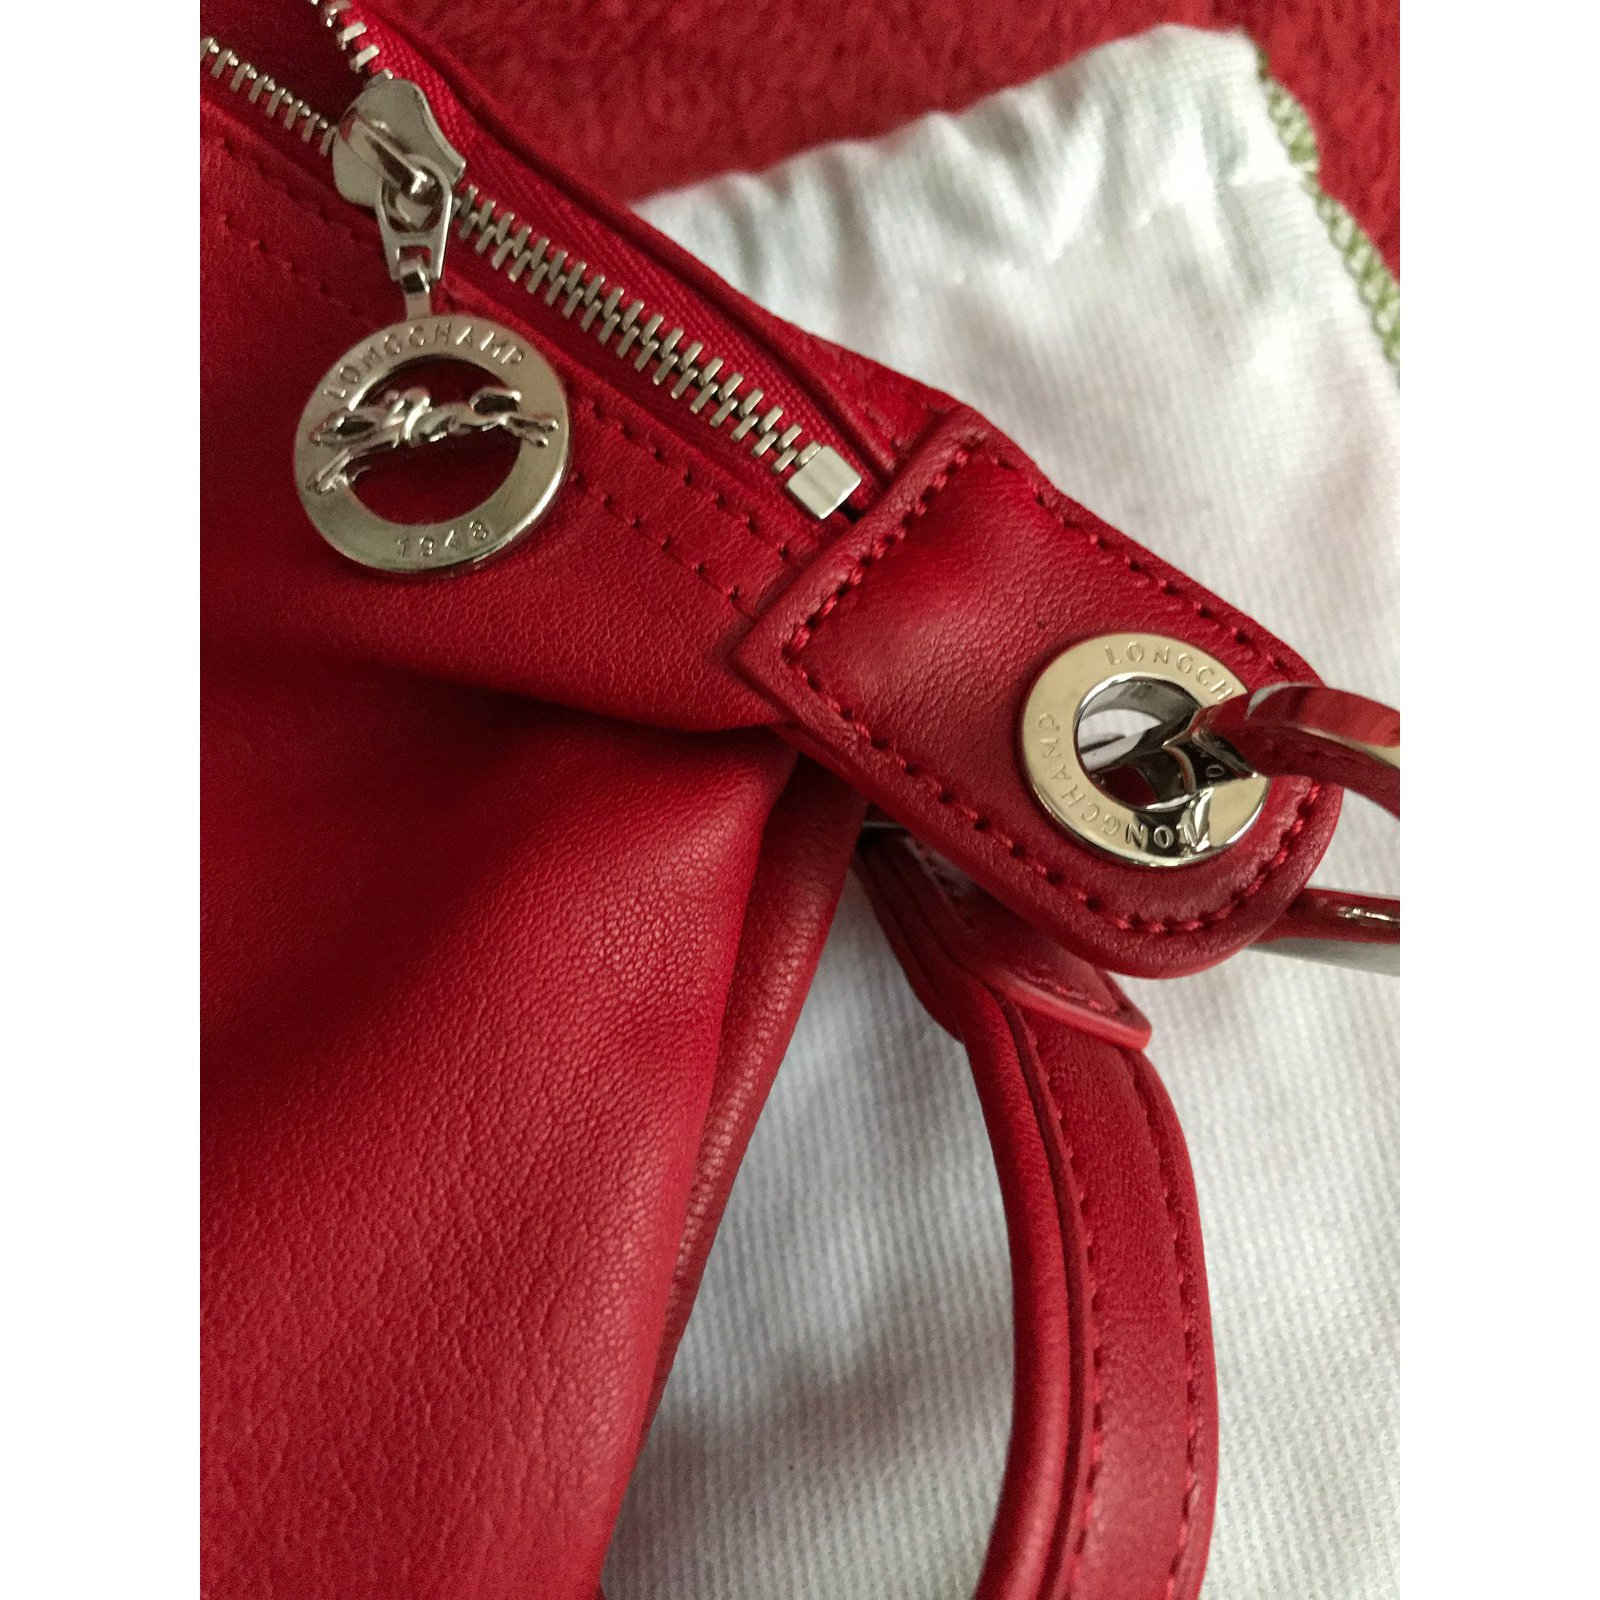 c18cf60b26cb Longchamp Le Pliage Cuir leather shopper - Red- New with tags Handbags  Leather Red ref.58103 - Joli Closet